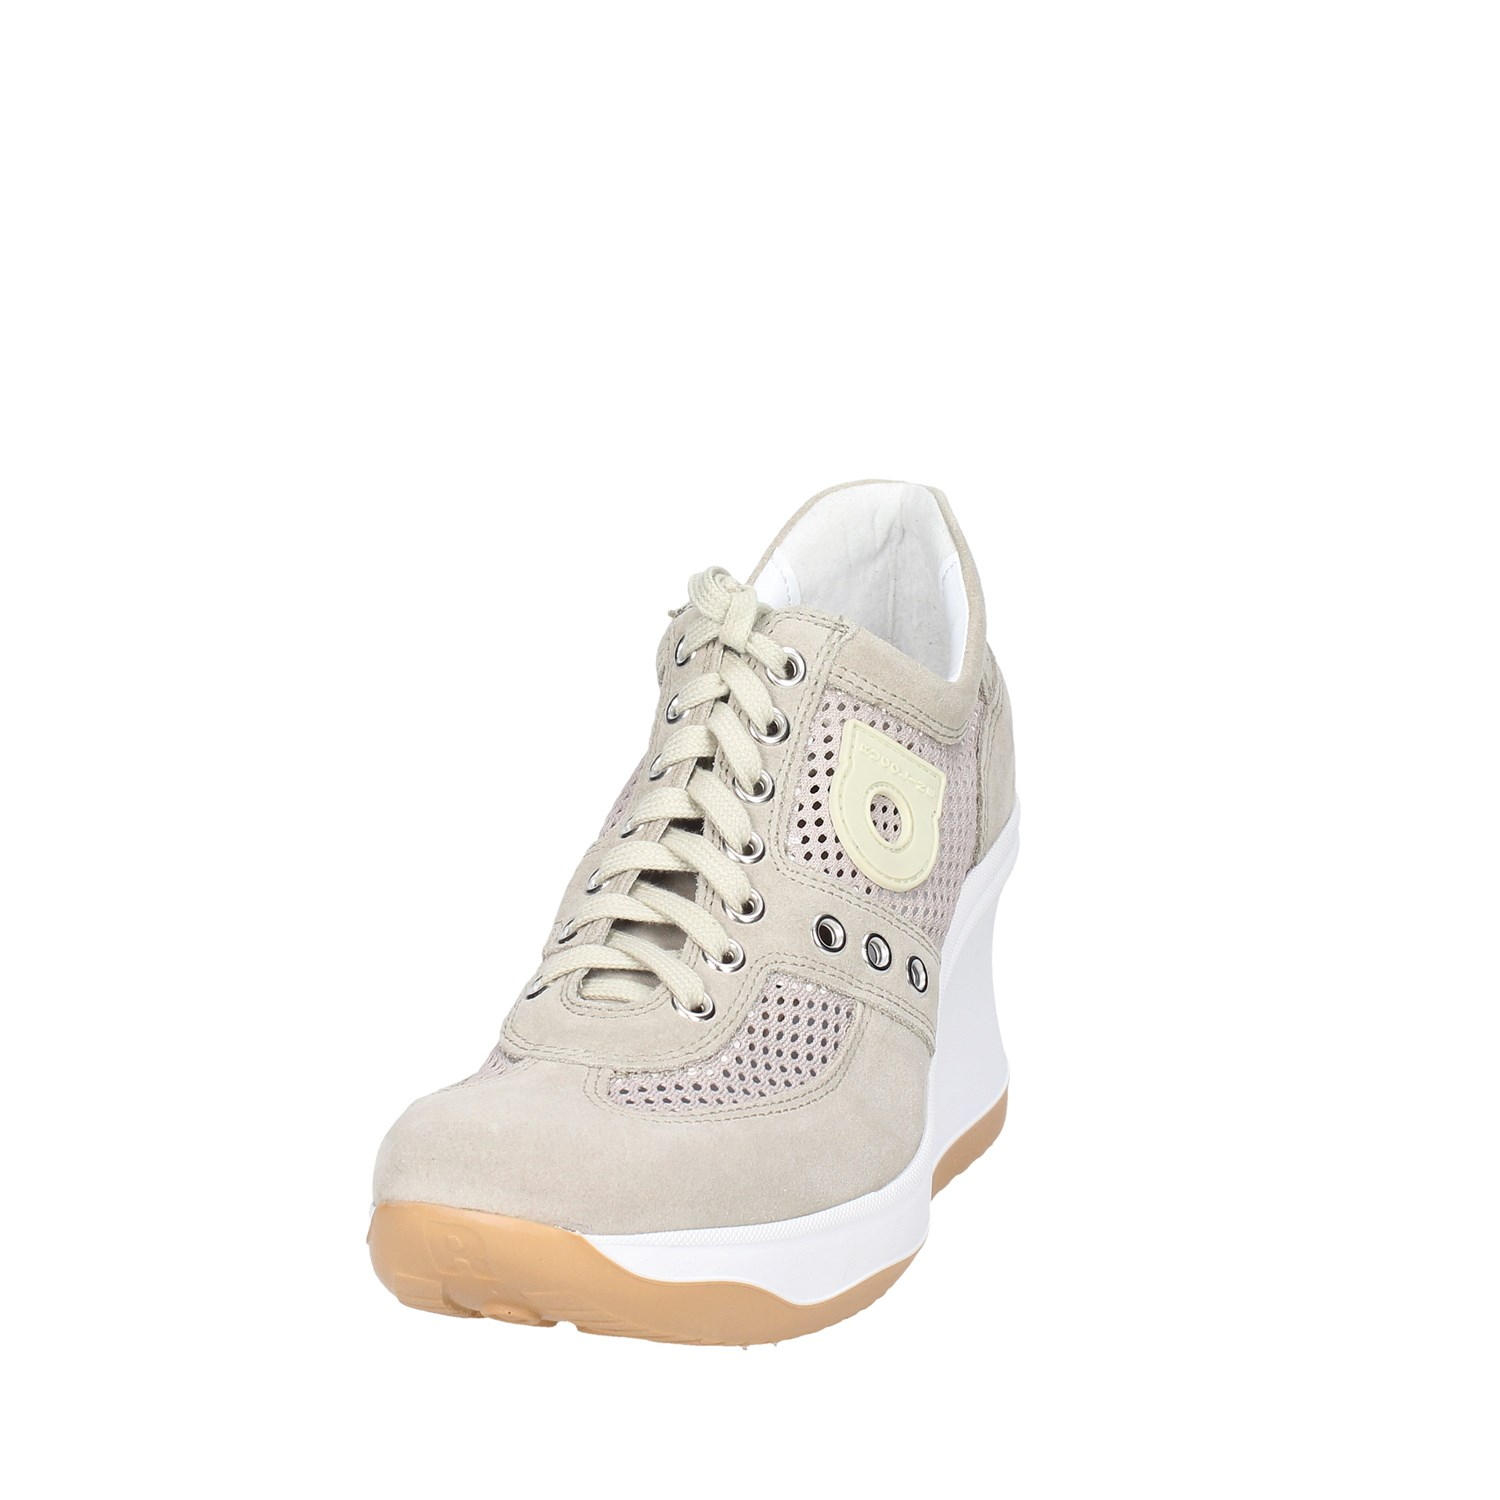 Hoch By Sneakers  Damen Agile By Hoch Rucoline  1800(A13) Frühjahr/Sommer a2631b